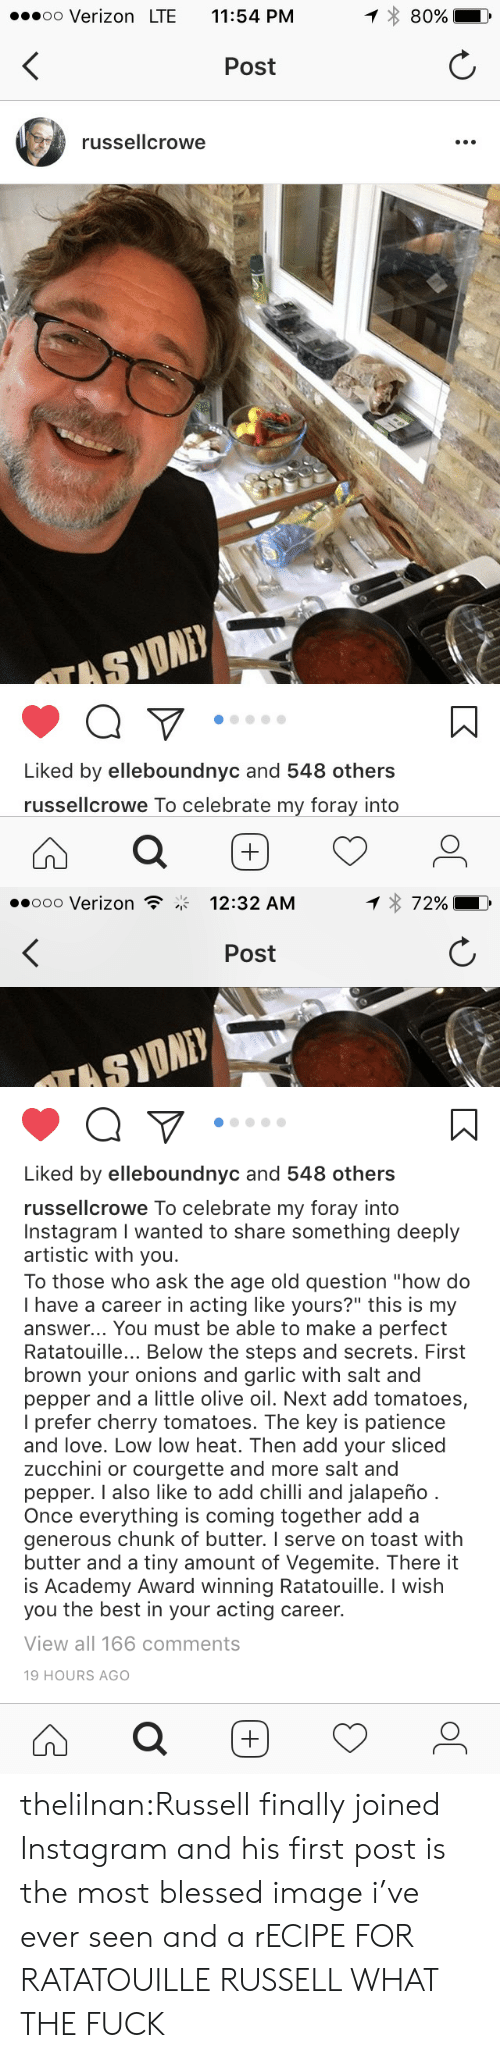 "Blessed, Instagram, and Love: oo Verizon LTE 11:54 PM  80%  Post  russellcrowe  Liked by elleboundnyc and 548 others  russellcrowe To celebrate my foray into   ooo Verizon  12:32 AM  Post  SYONE  Liked by elleboundnyc and 548 others  russellcrowe To celebrate my foray into  Instagram I wanted to share something deeply  artistic with you  To those who ask the age old question ""how do  I have a career in acting like yours?"" this is my  answer... You must be able to make a perfect  Ratatouille... Below the steps and secrets. First  brown your onions and garlic with salt and  pepper and a little olive oil. Next add tomatoes,  I prefer cherry tomatoes. The key is patience  and love. Low low heat. Then add your sliced  zucchini or courgette and more salt and  pepper. I also like to add chilli and jalapeño  Once everything is coming together add a  generous chunk of butter. I serve on toast with  butter and a tiny amount of Vegemite. There it  is Academy Award winning Ratatouille. I wish  you the best in your acting career.  View all 166 comments  19 HOURS AGO thelilnan:Russell finally joined Instagram and his first post is the most blessed image i've ever seen and a rECIPE FOR RATATOUILLE RUSSELL WHAT THE FUCK"